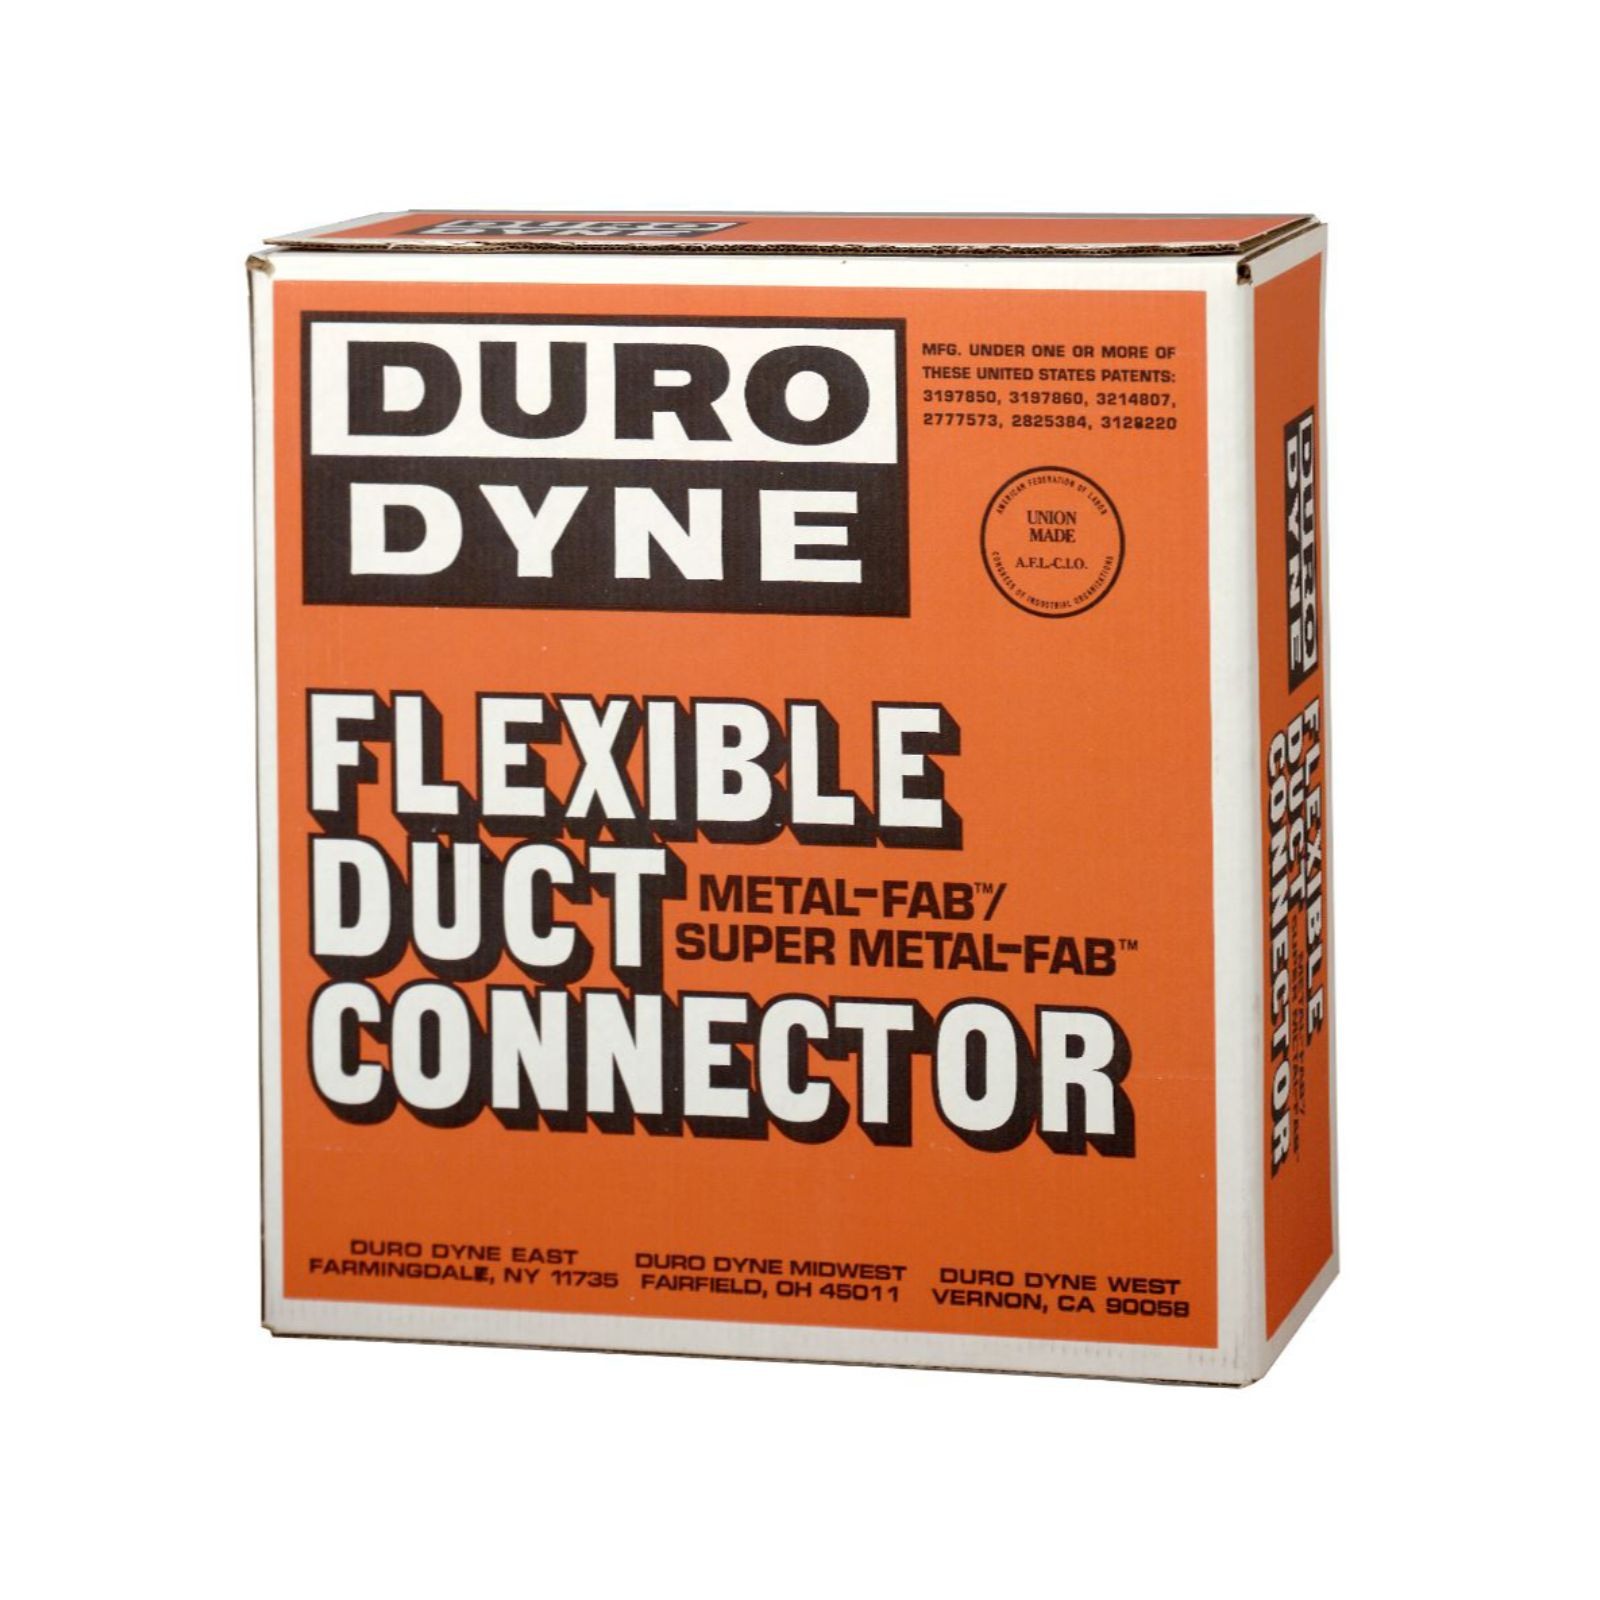 "Duro Dyne 10159 - MBX Black Excelon Flexible Duct Connector, UL #R4462, 3"" X 3"" X 3"""